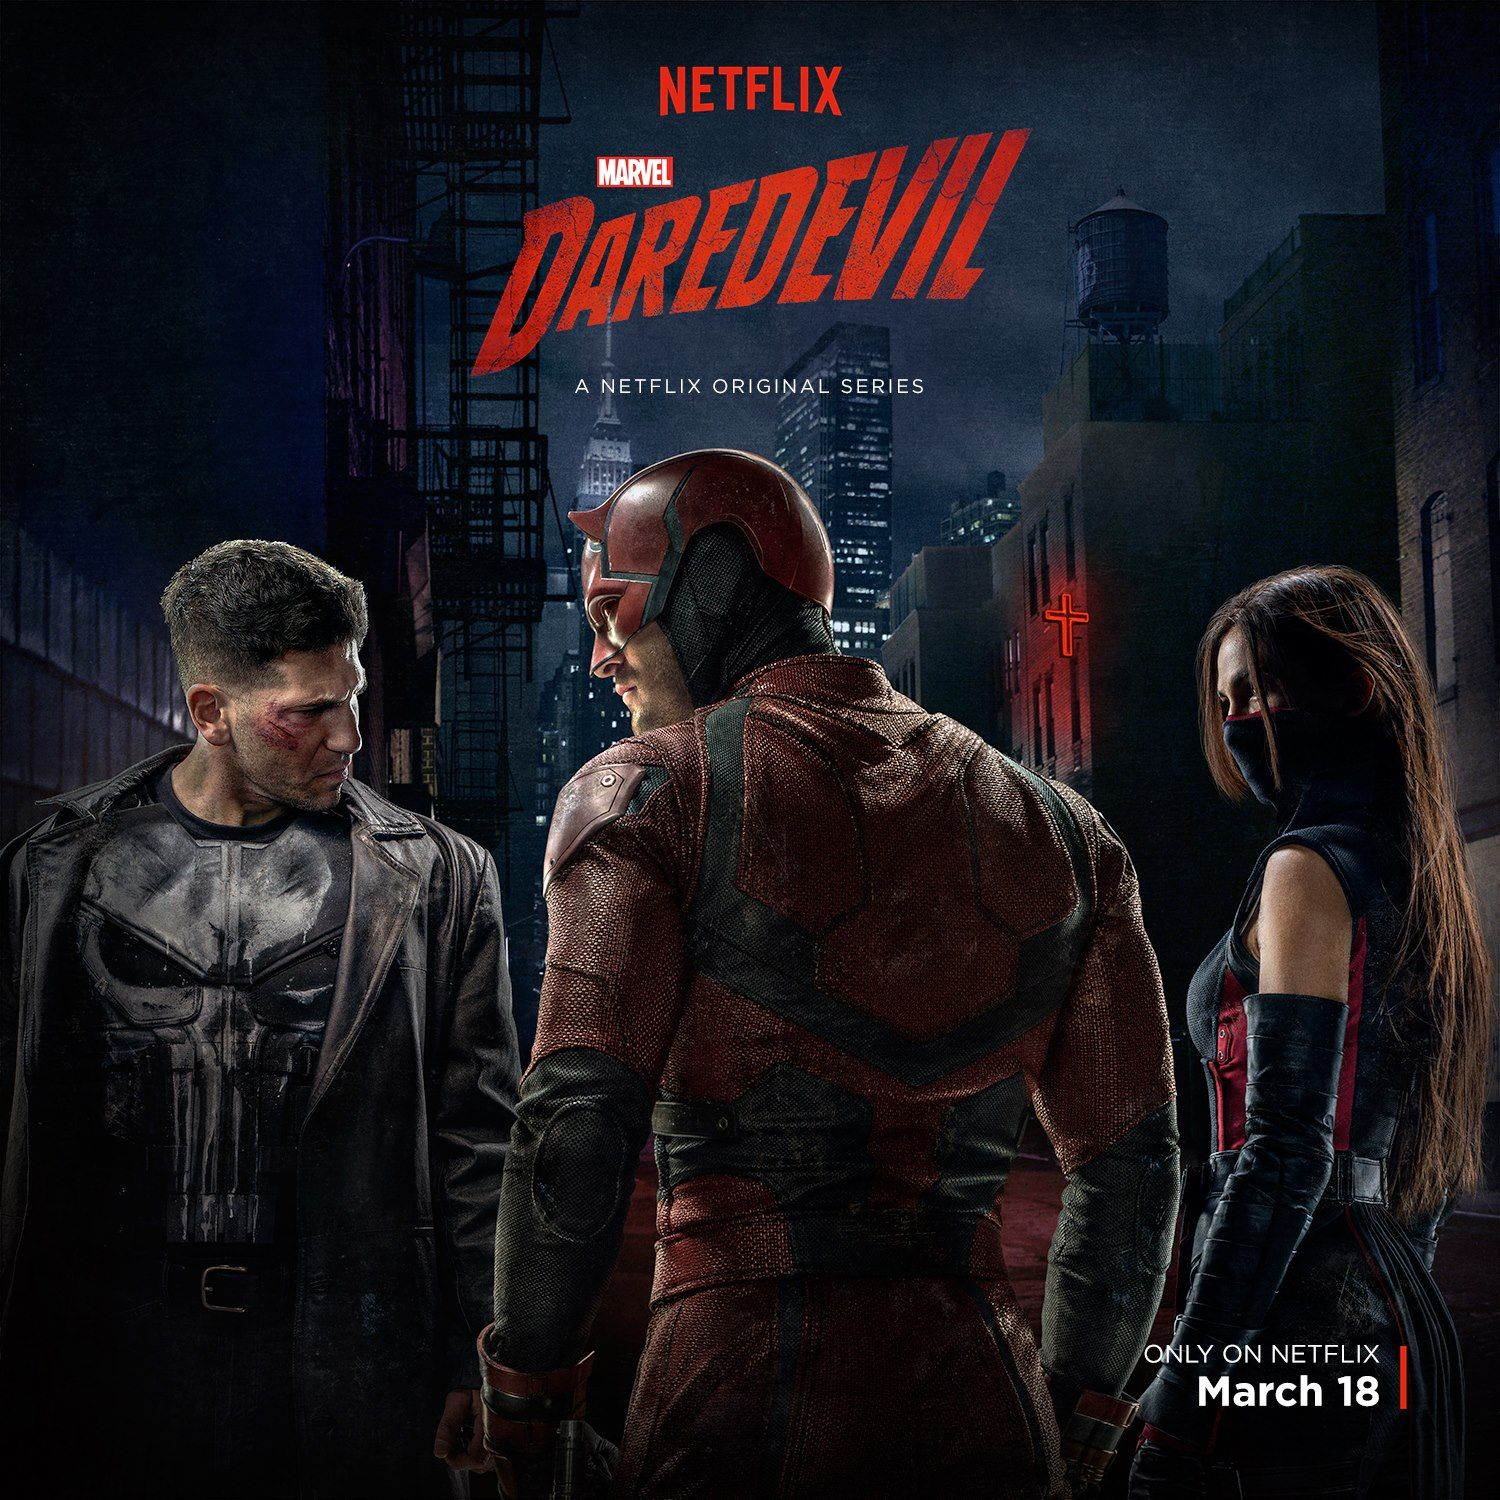 Daredevil Netflix Images Season 2 Poster HD Wallpaper And Background Photos